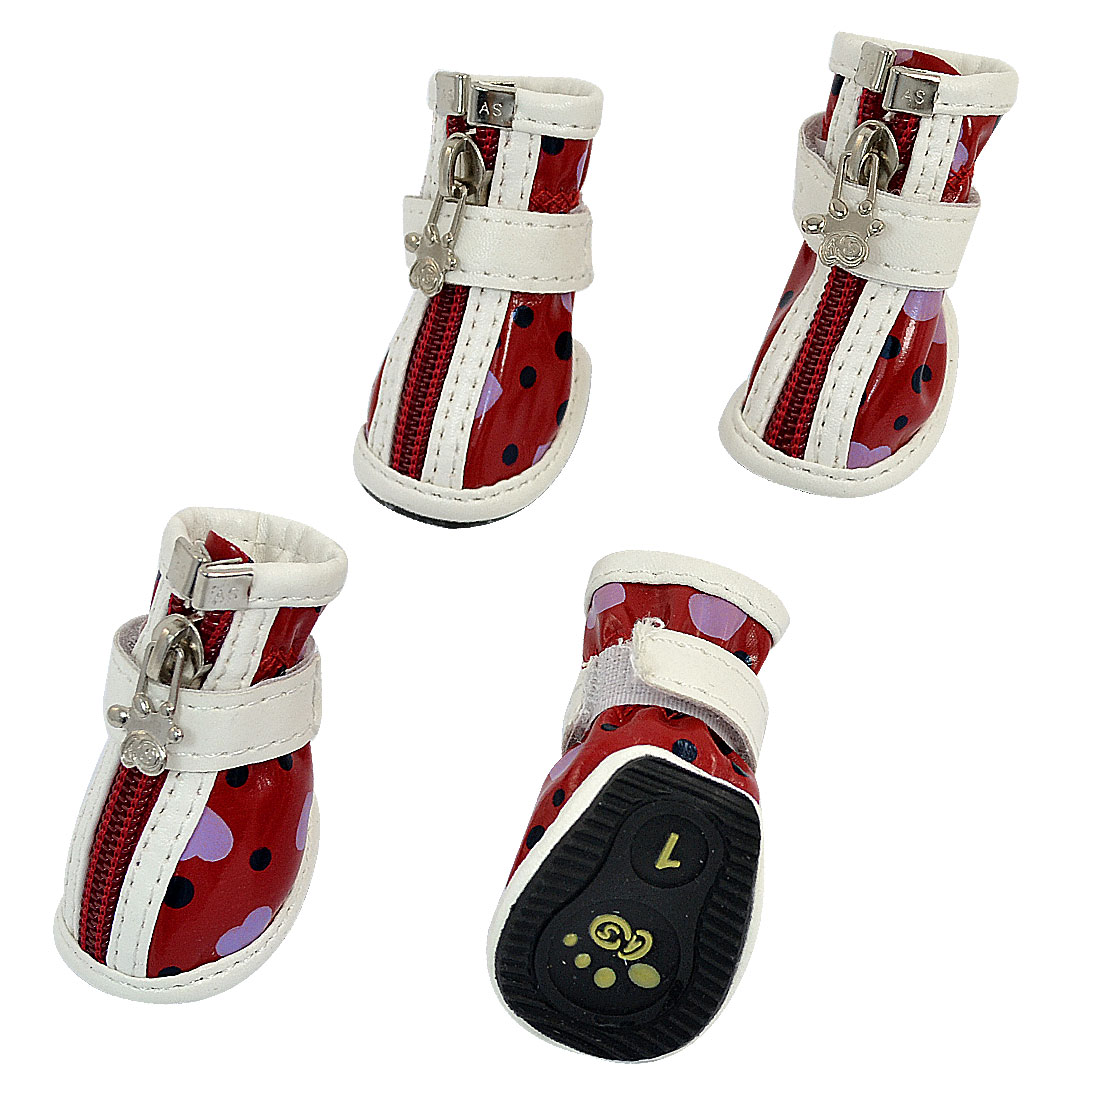 2 Pair Hook Loop Closure Zip Up Pet Dog Doggy Shoes Boots Booties Red White Size XXS